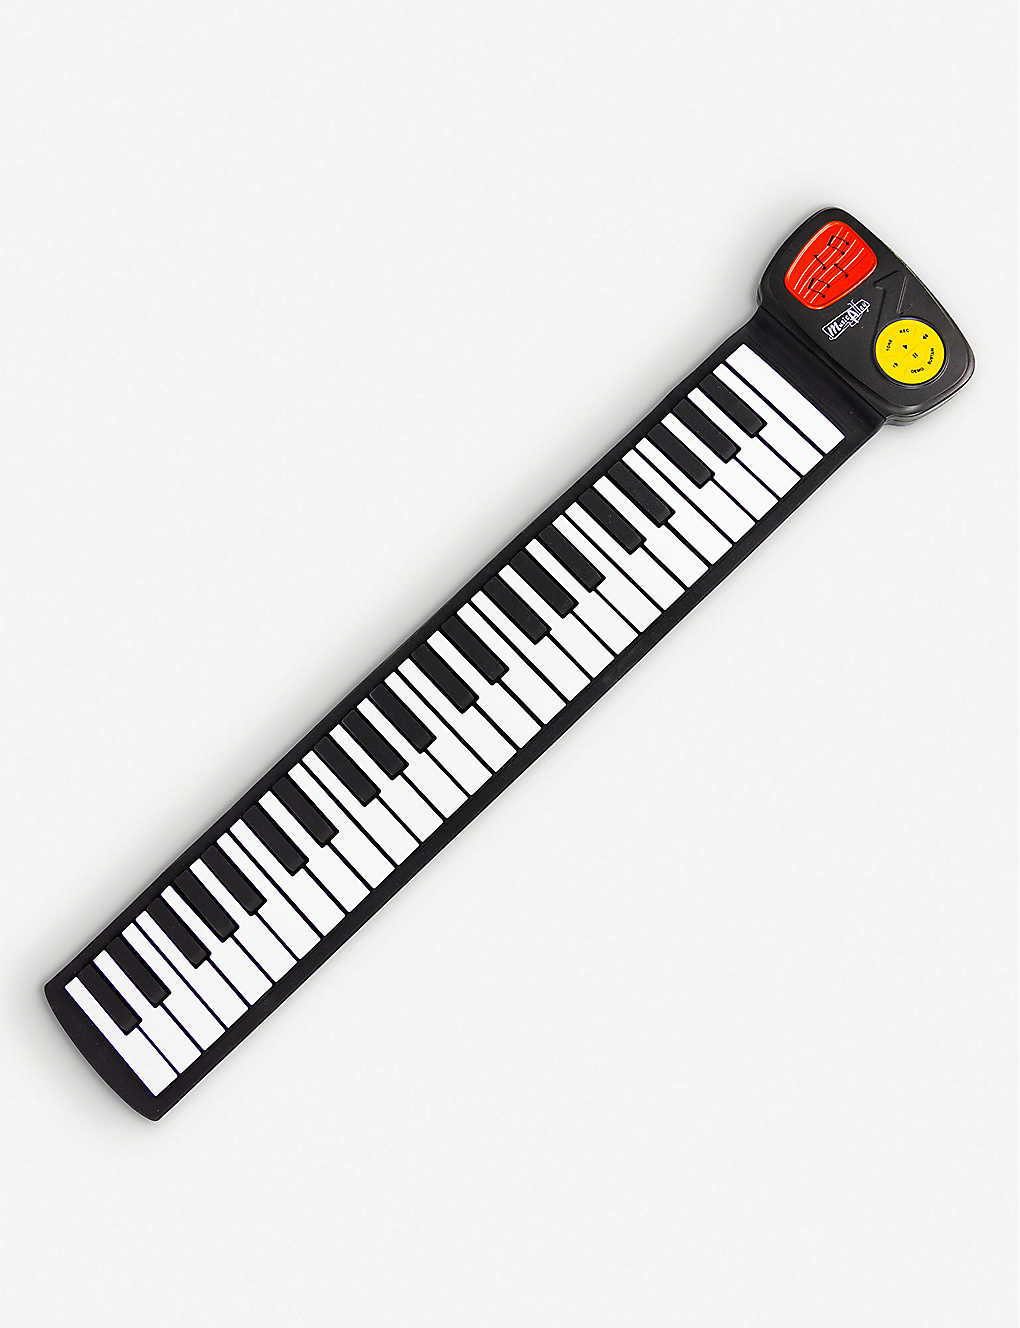 MUSIC: Music roll-up piano